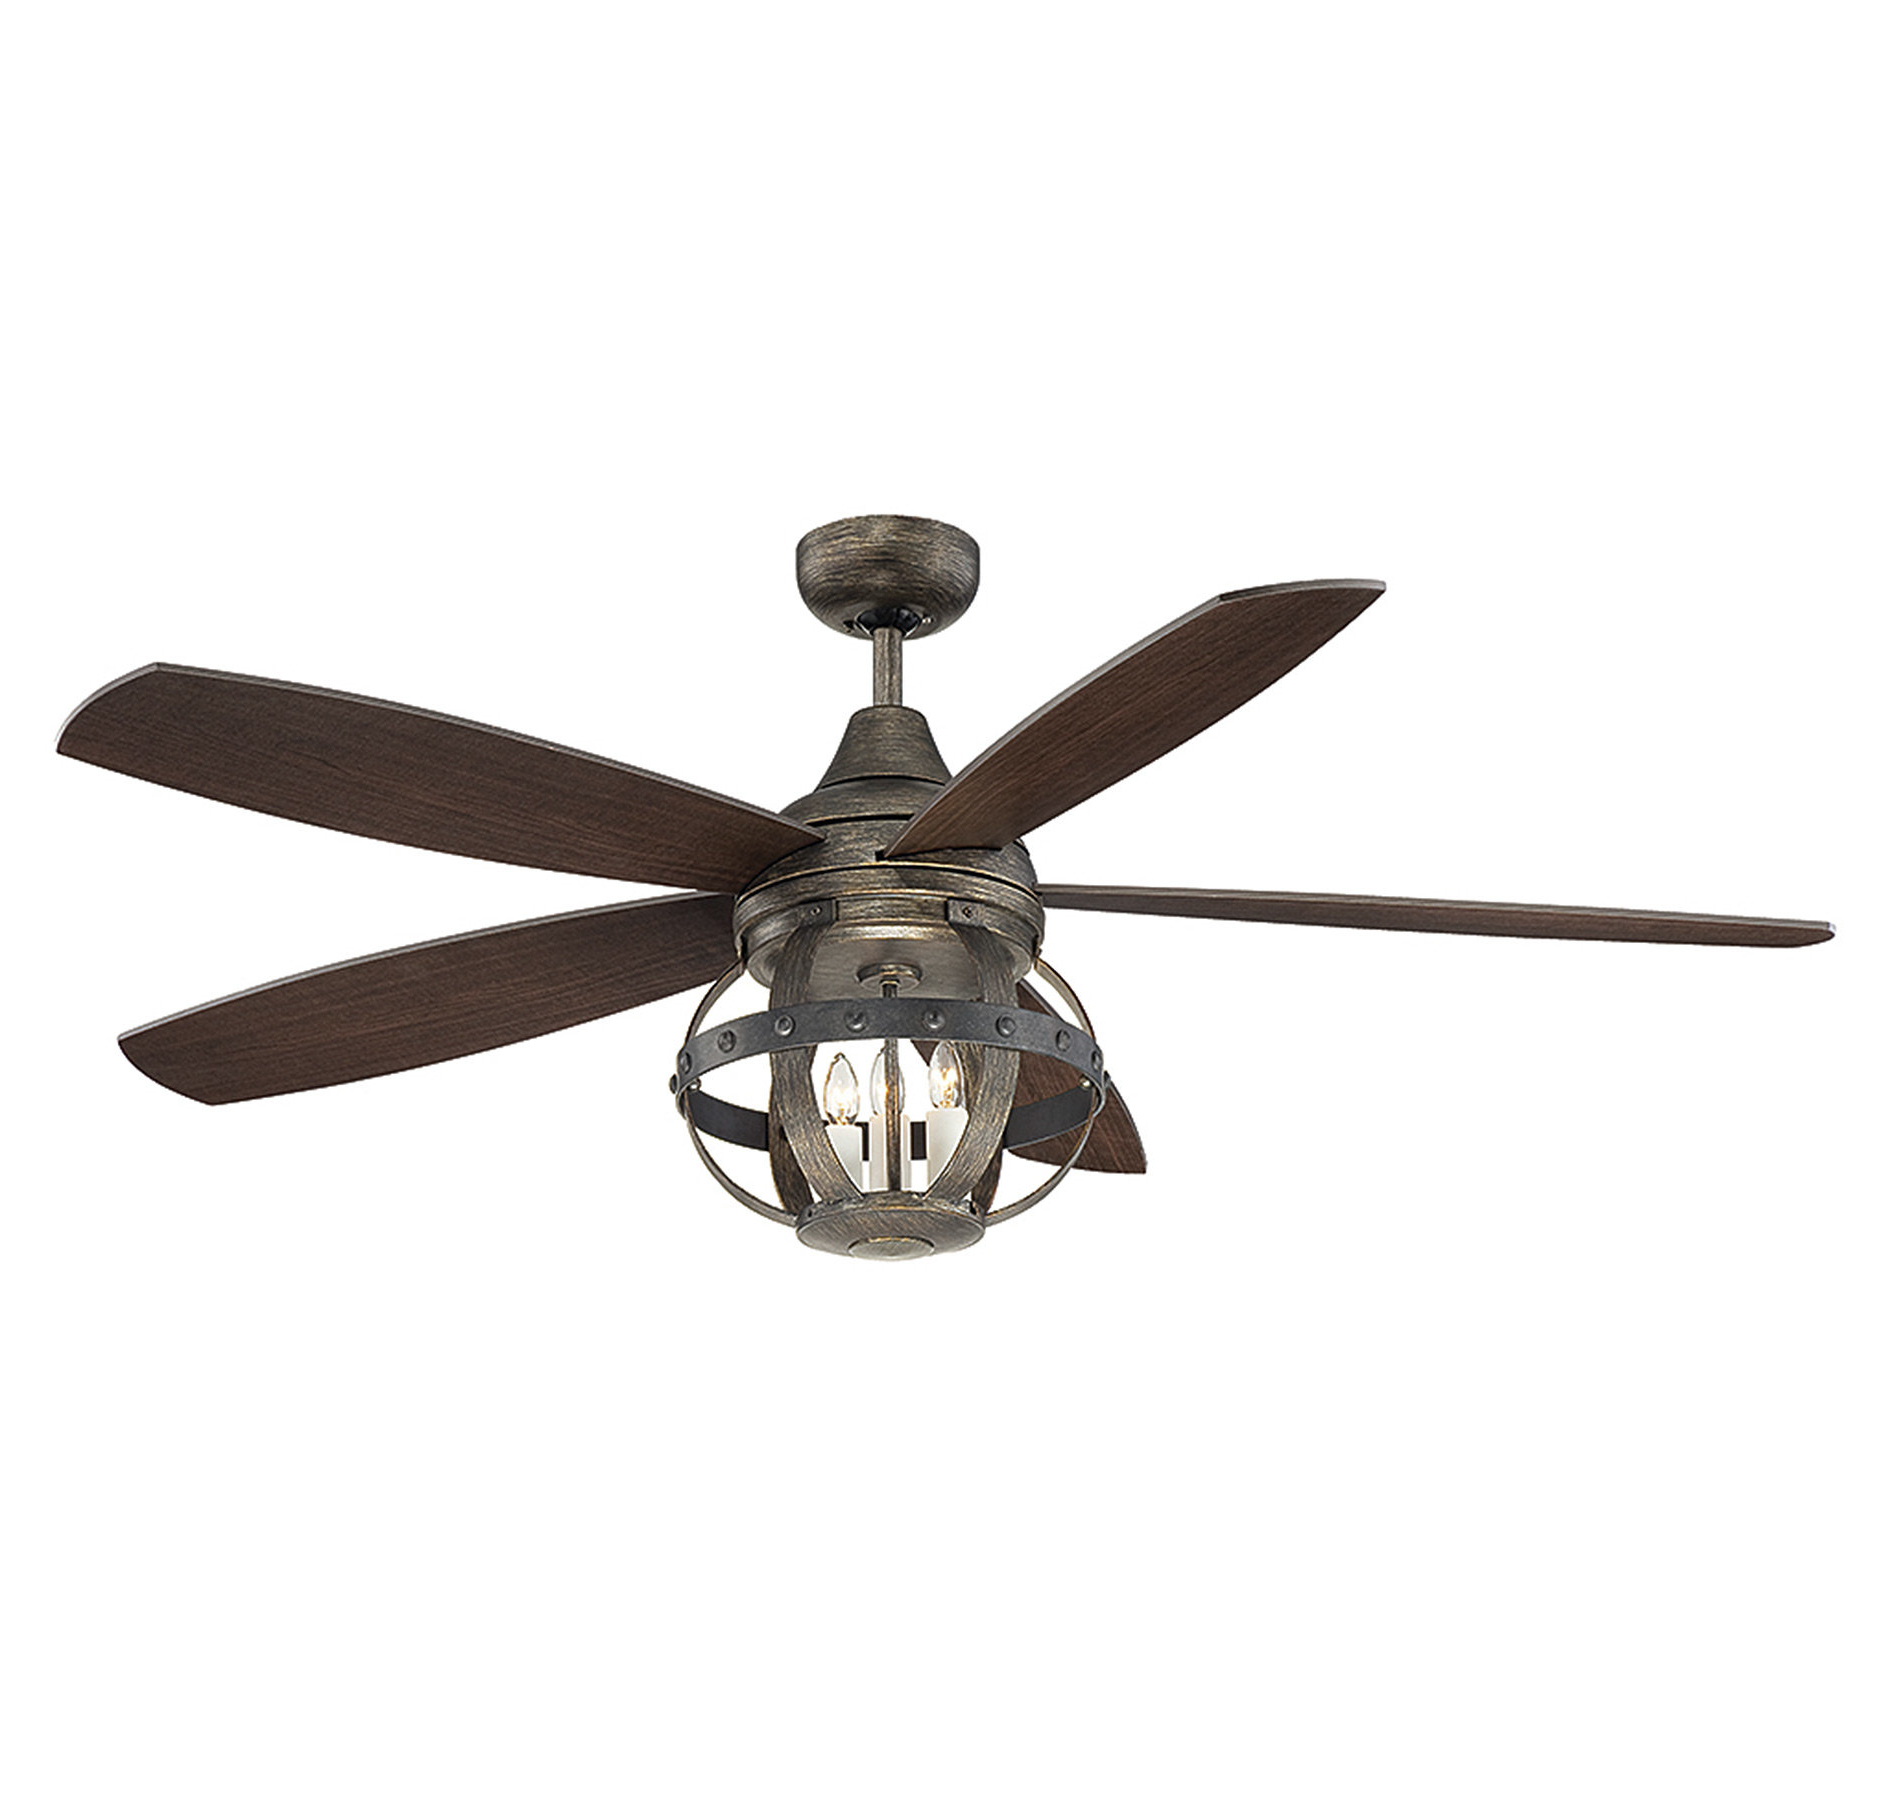 """Wilburton 3 Blade Outdoor Ceiling Fans With Most Current 52"""" Wilburton 5 Blade Ceiling Fan With Remote, Light Kit Included (View 19 of 20)"""